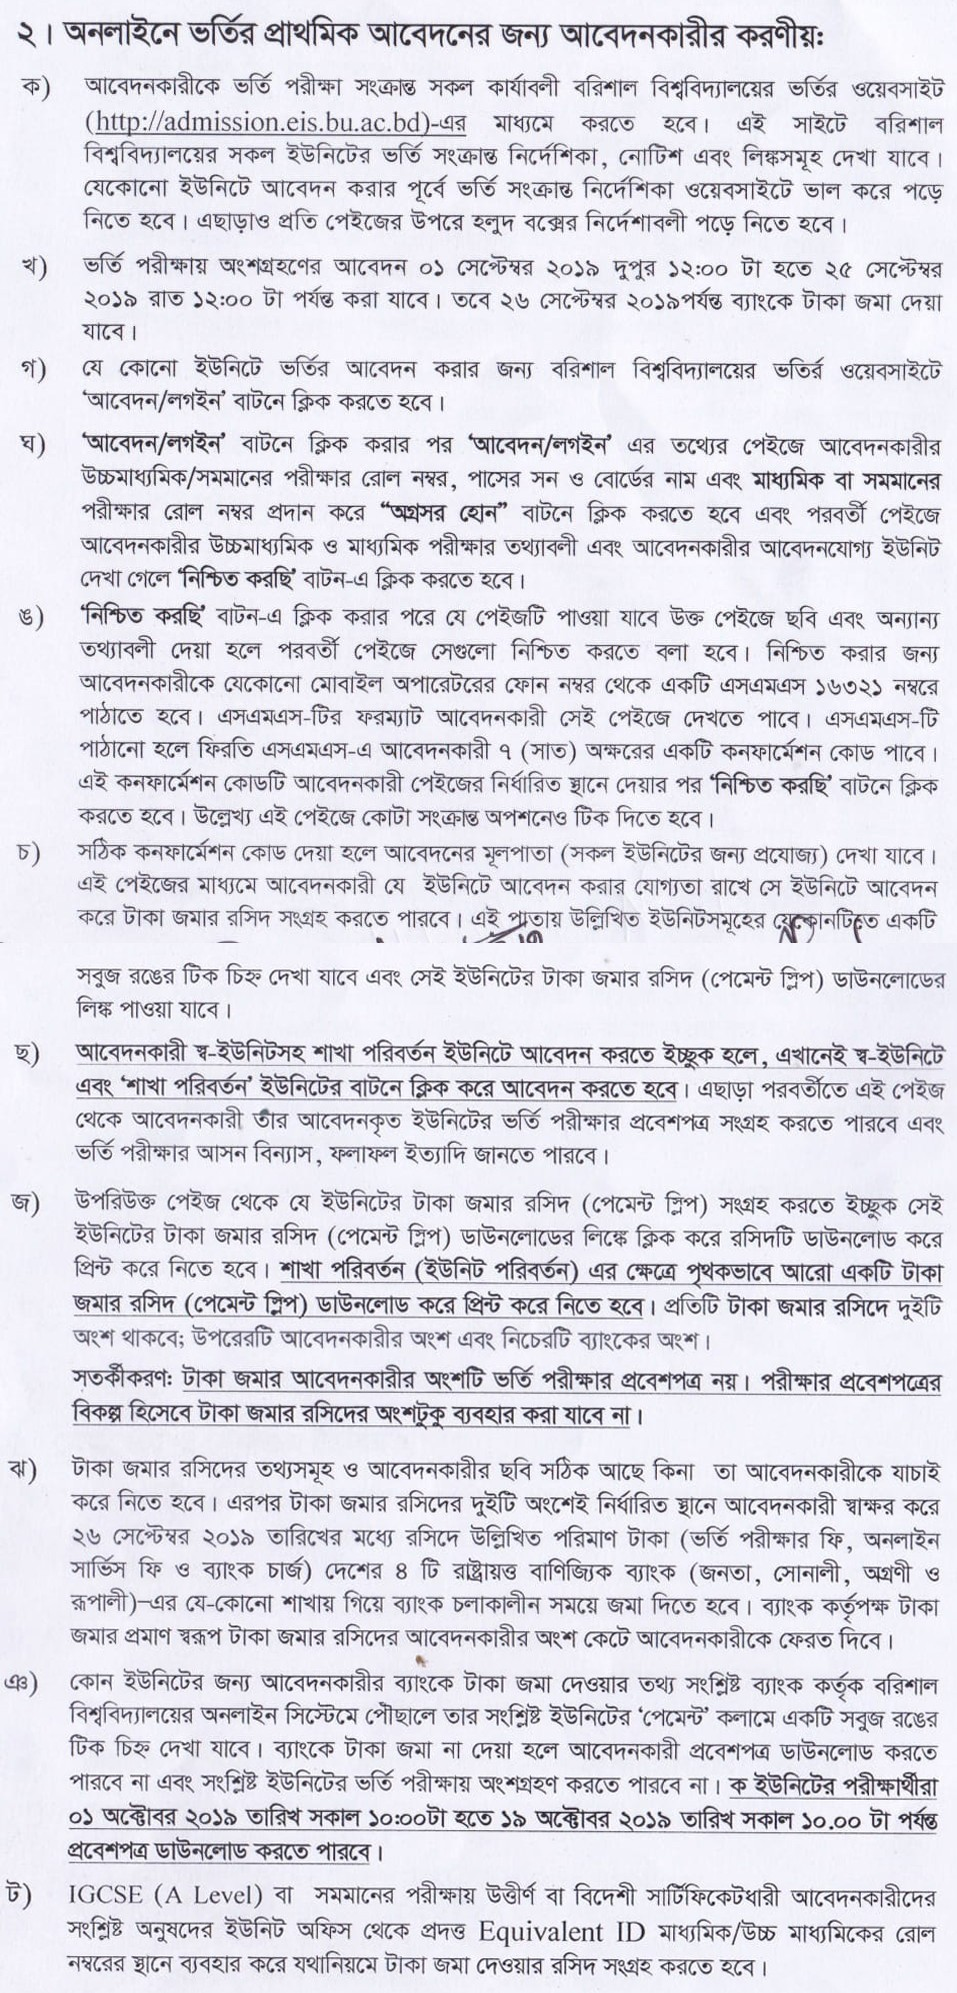 barisal university application procedure